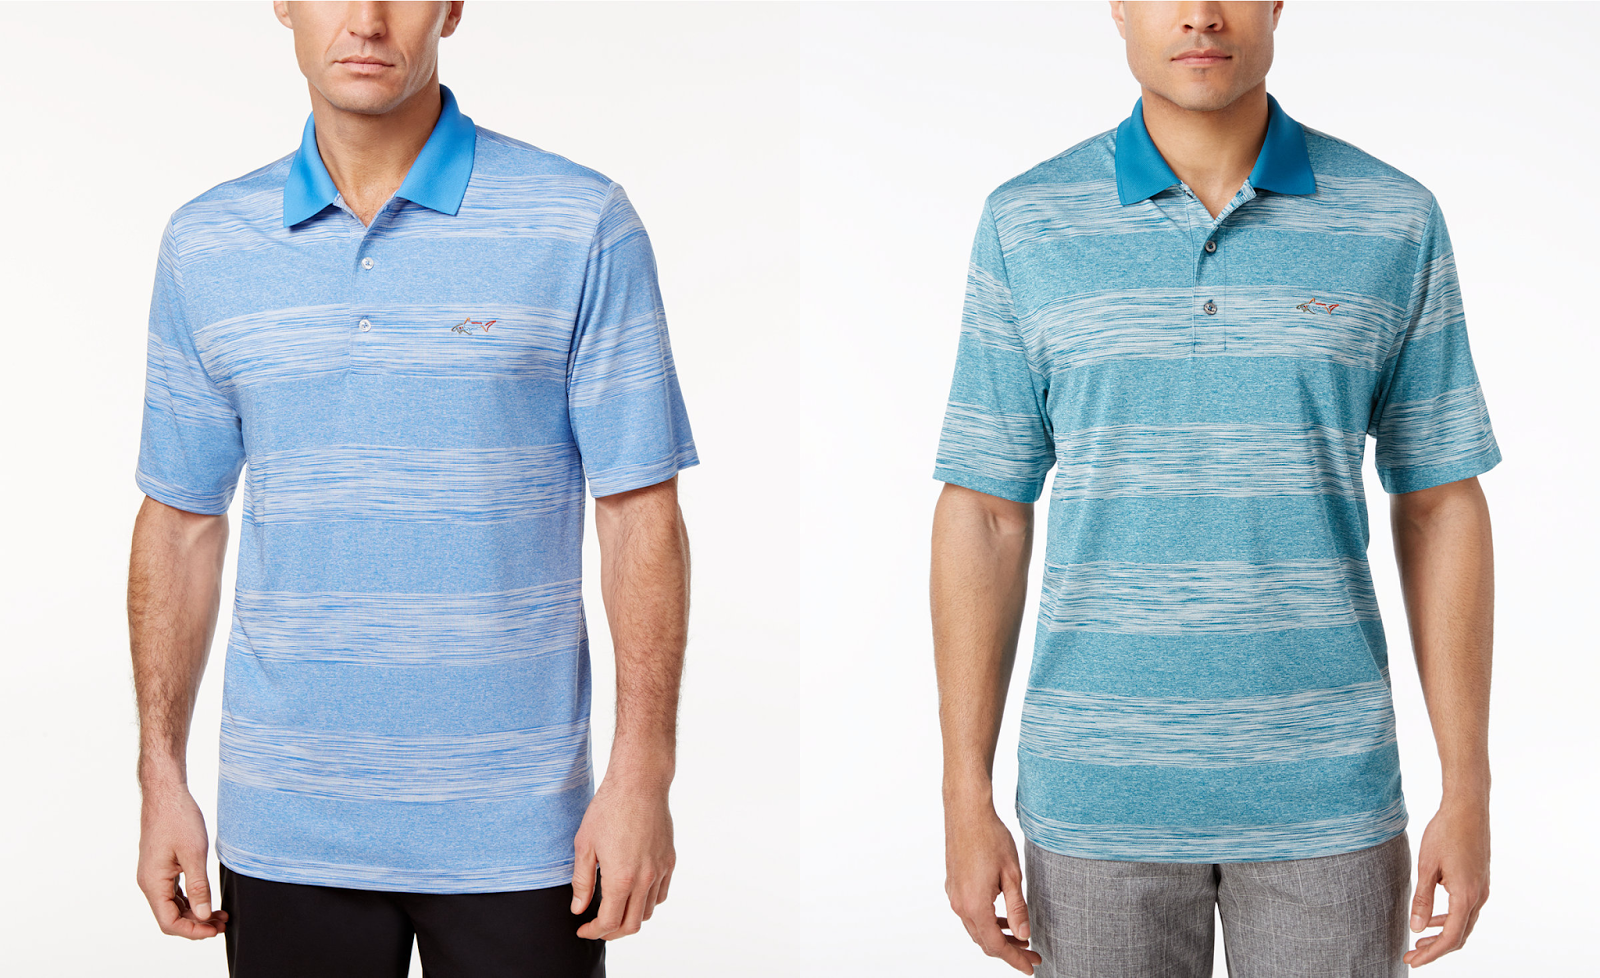 e759e322c5f3 Macy s offers this Greg Norman for Tasso Elba Men s Heathered Striped  Performance Sun Protection Golf Polo in these two colors on sale for  5.96  only (Reg.